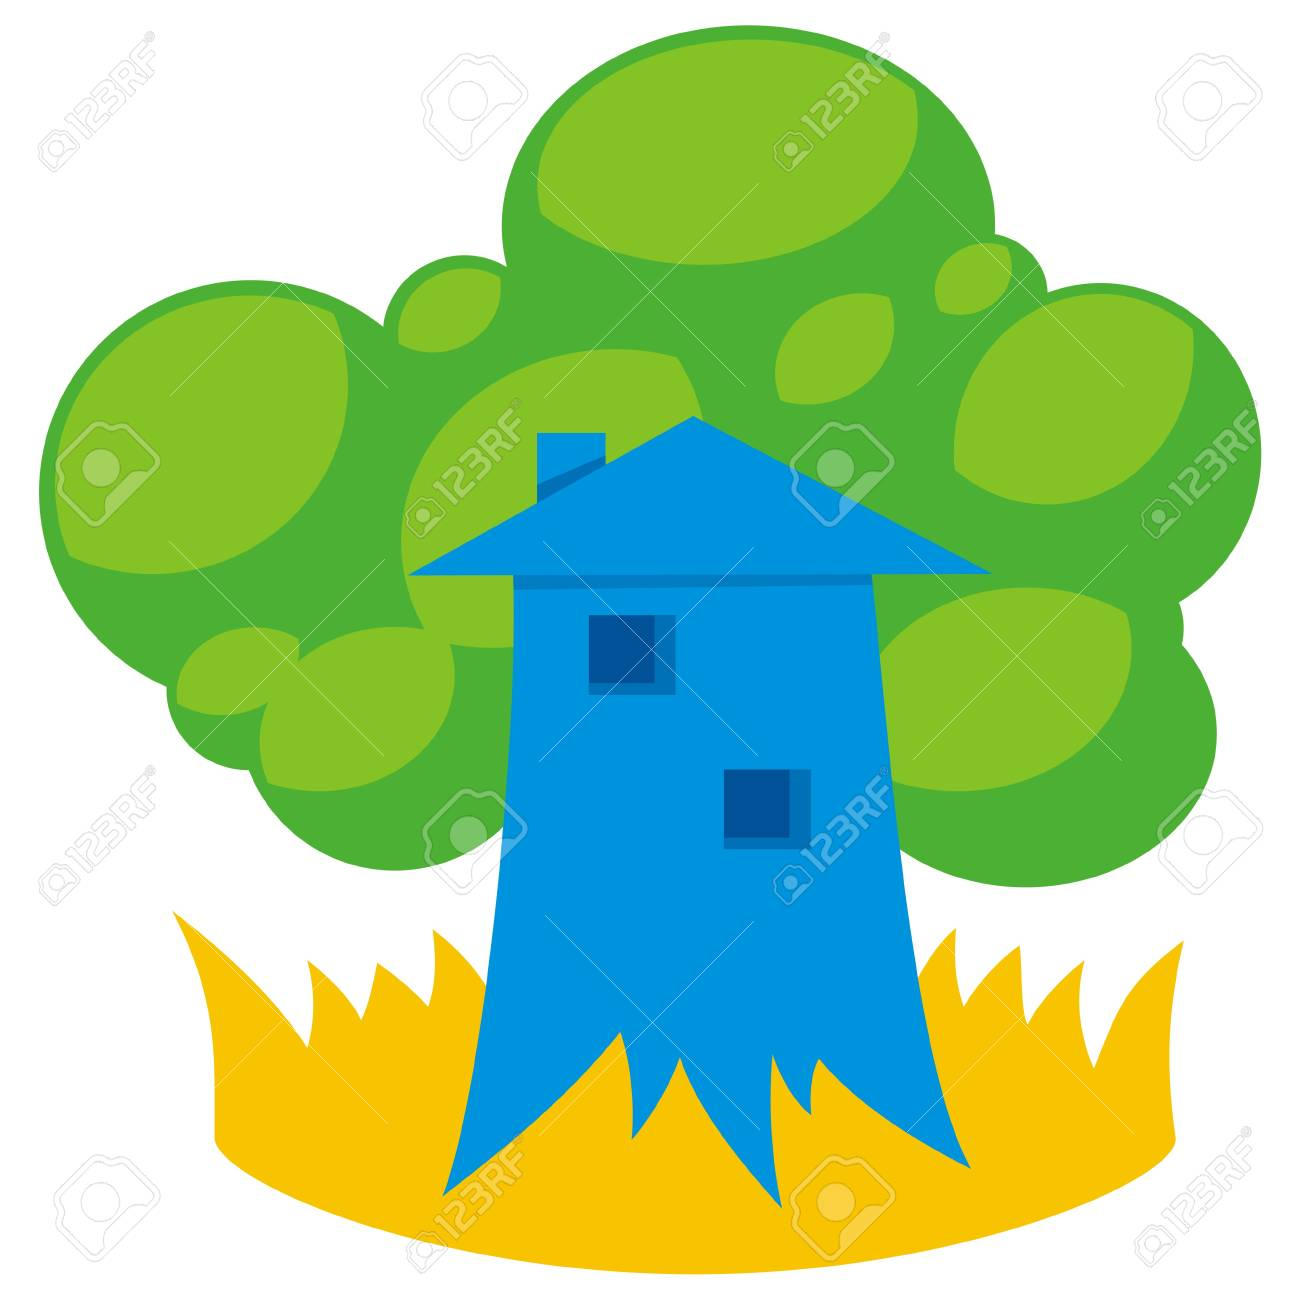 Greener home icon with tree like building - 5776845